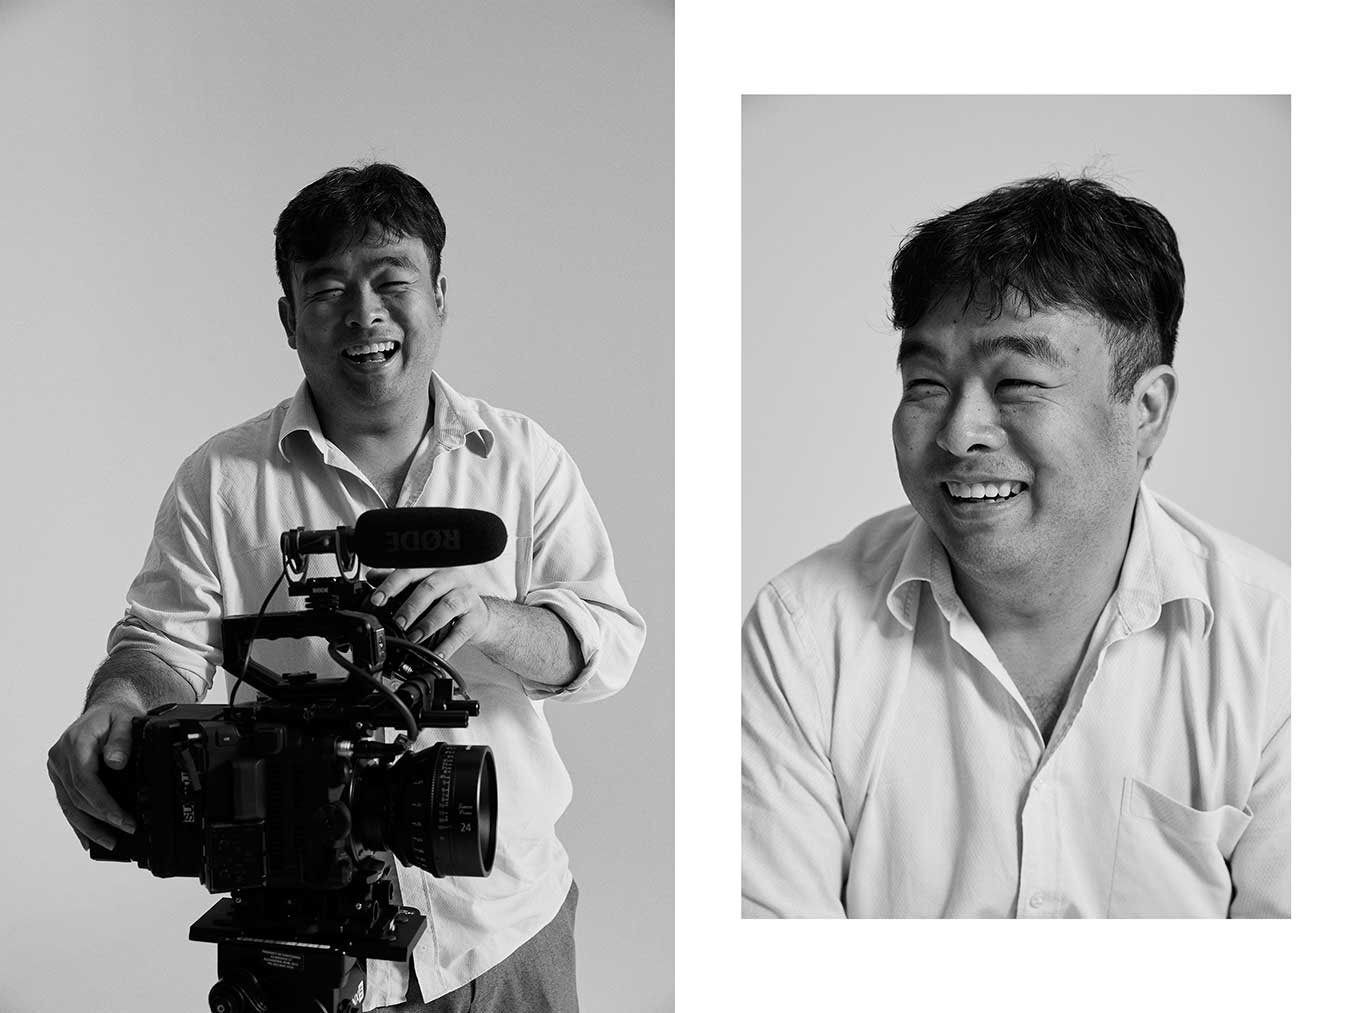 david-tran smiling-with-camera-black-and-white-portrait-by-kristina-yenko